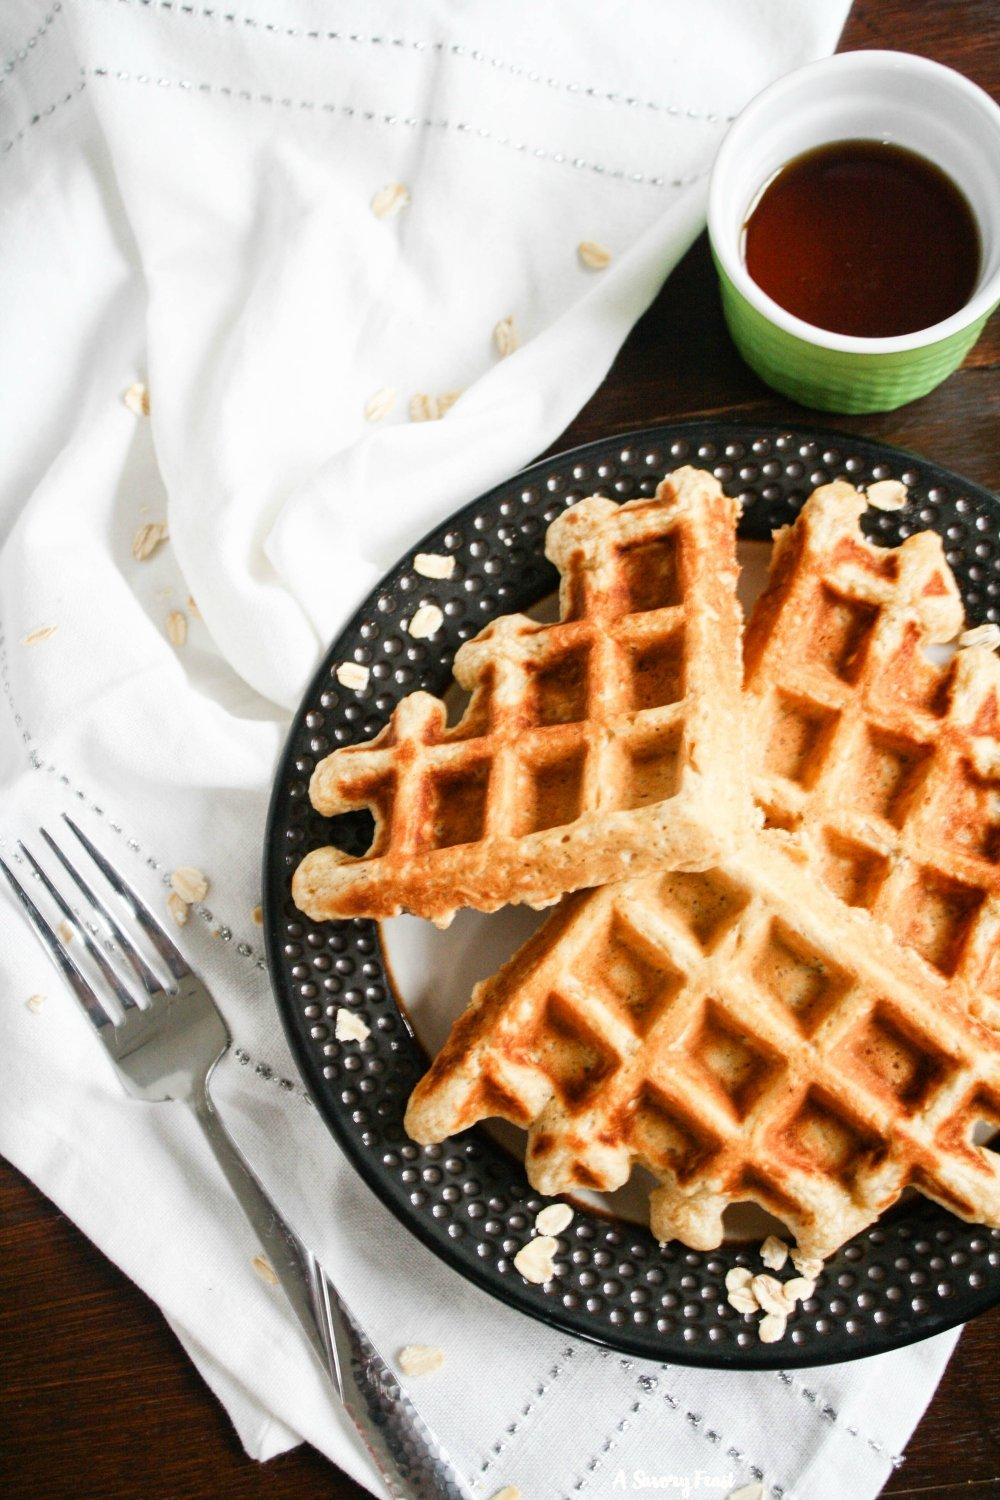 Hearty Oatmeal Waffles are a wonderful start to your weekend. This waffle batter is simple to mix up with ingredients you probably have in the house. You'll love the flavor and texture of these delicious waffles.